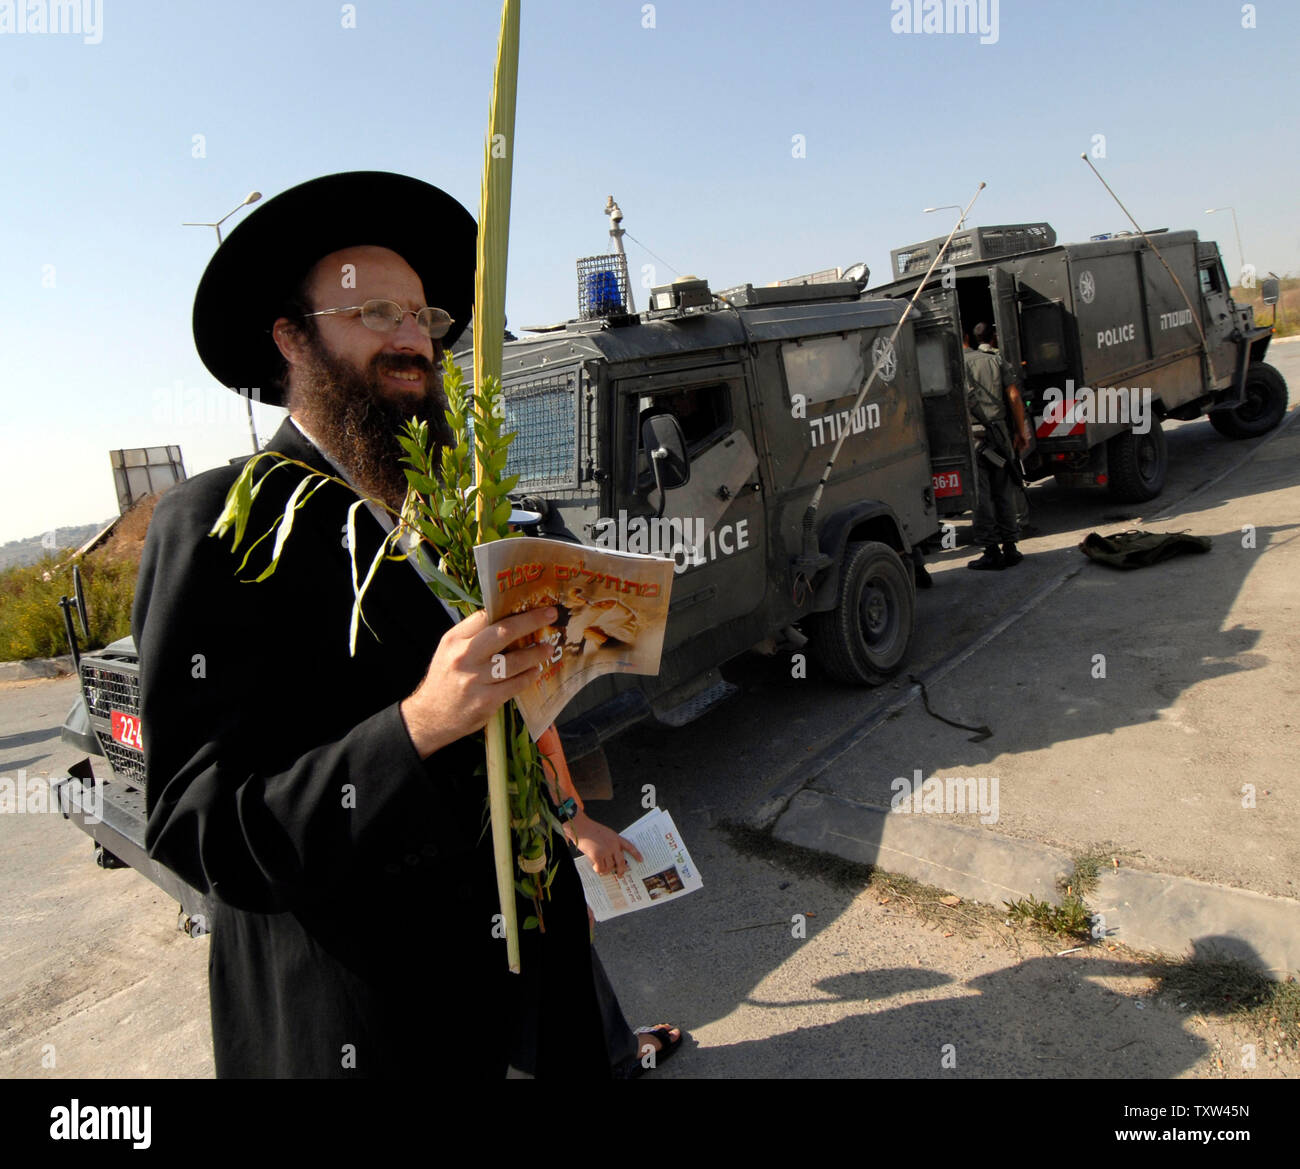 An Ultra-Orthodox Jew carries lulav for Sukkot past Israeli border police jeeps in the Jewish settlement Efrat in the West Bank, September 30, 2007.  (UPI Photo/ Debbie Hill) - Stock Image